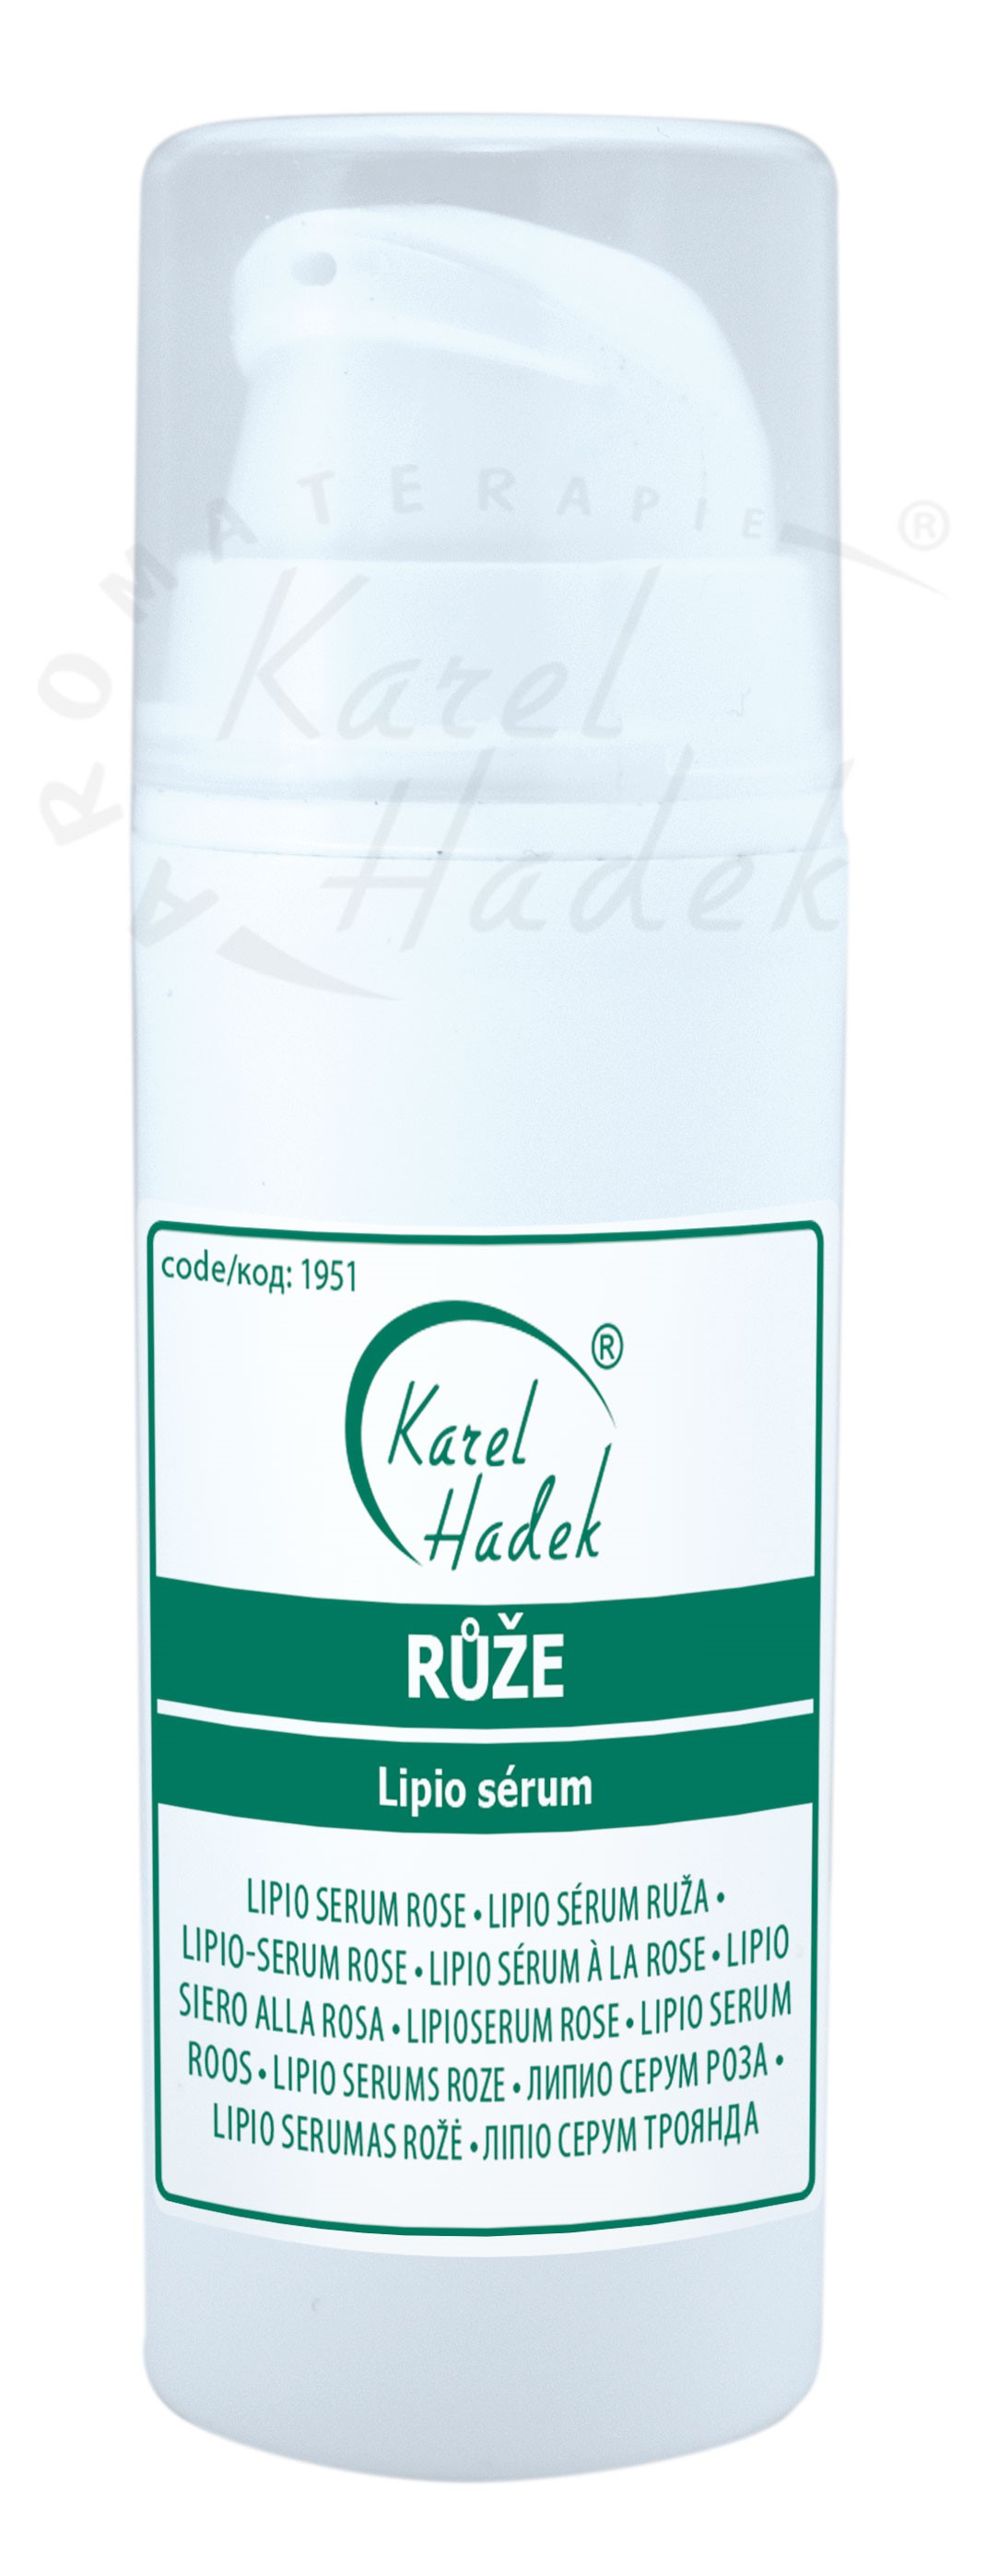 KH - RŮŽE LIPIO SÉRUM 30 ml